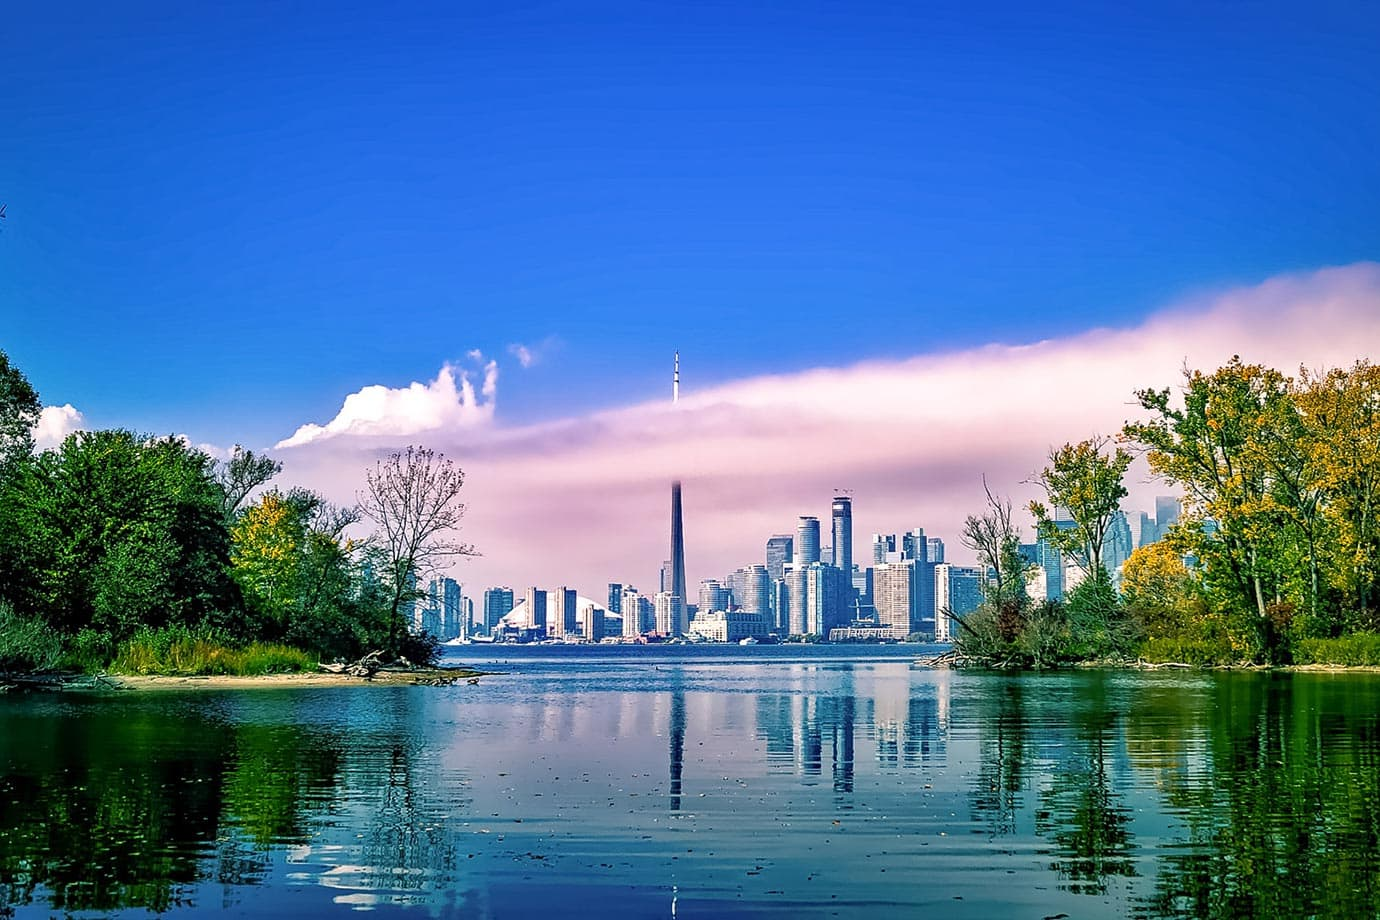 Working in Toronto, Canada